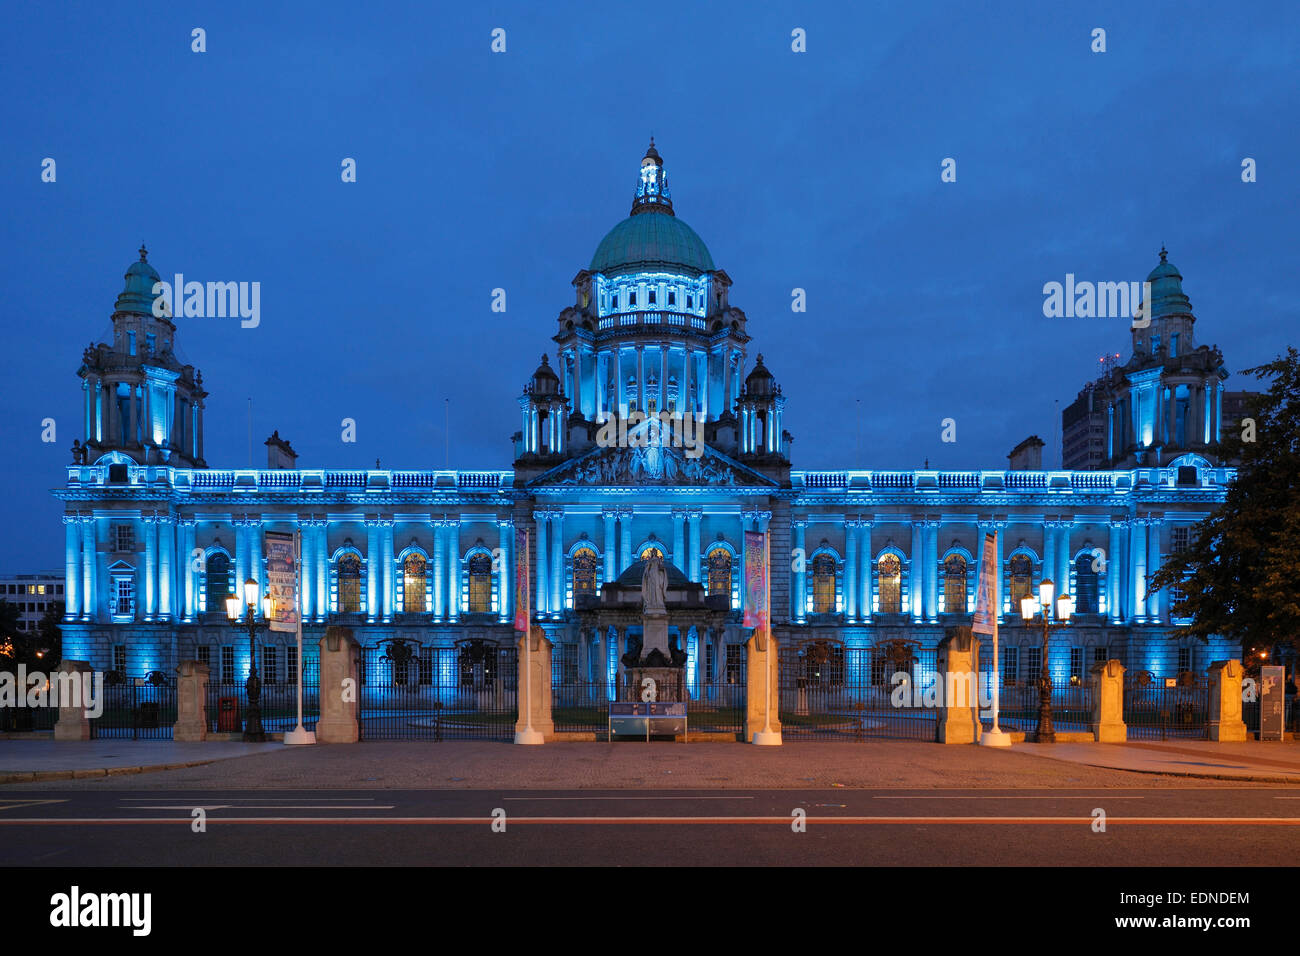 City Hall in Belfast at dusk, Northern Ireland - Stock Image